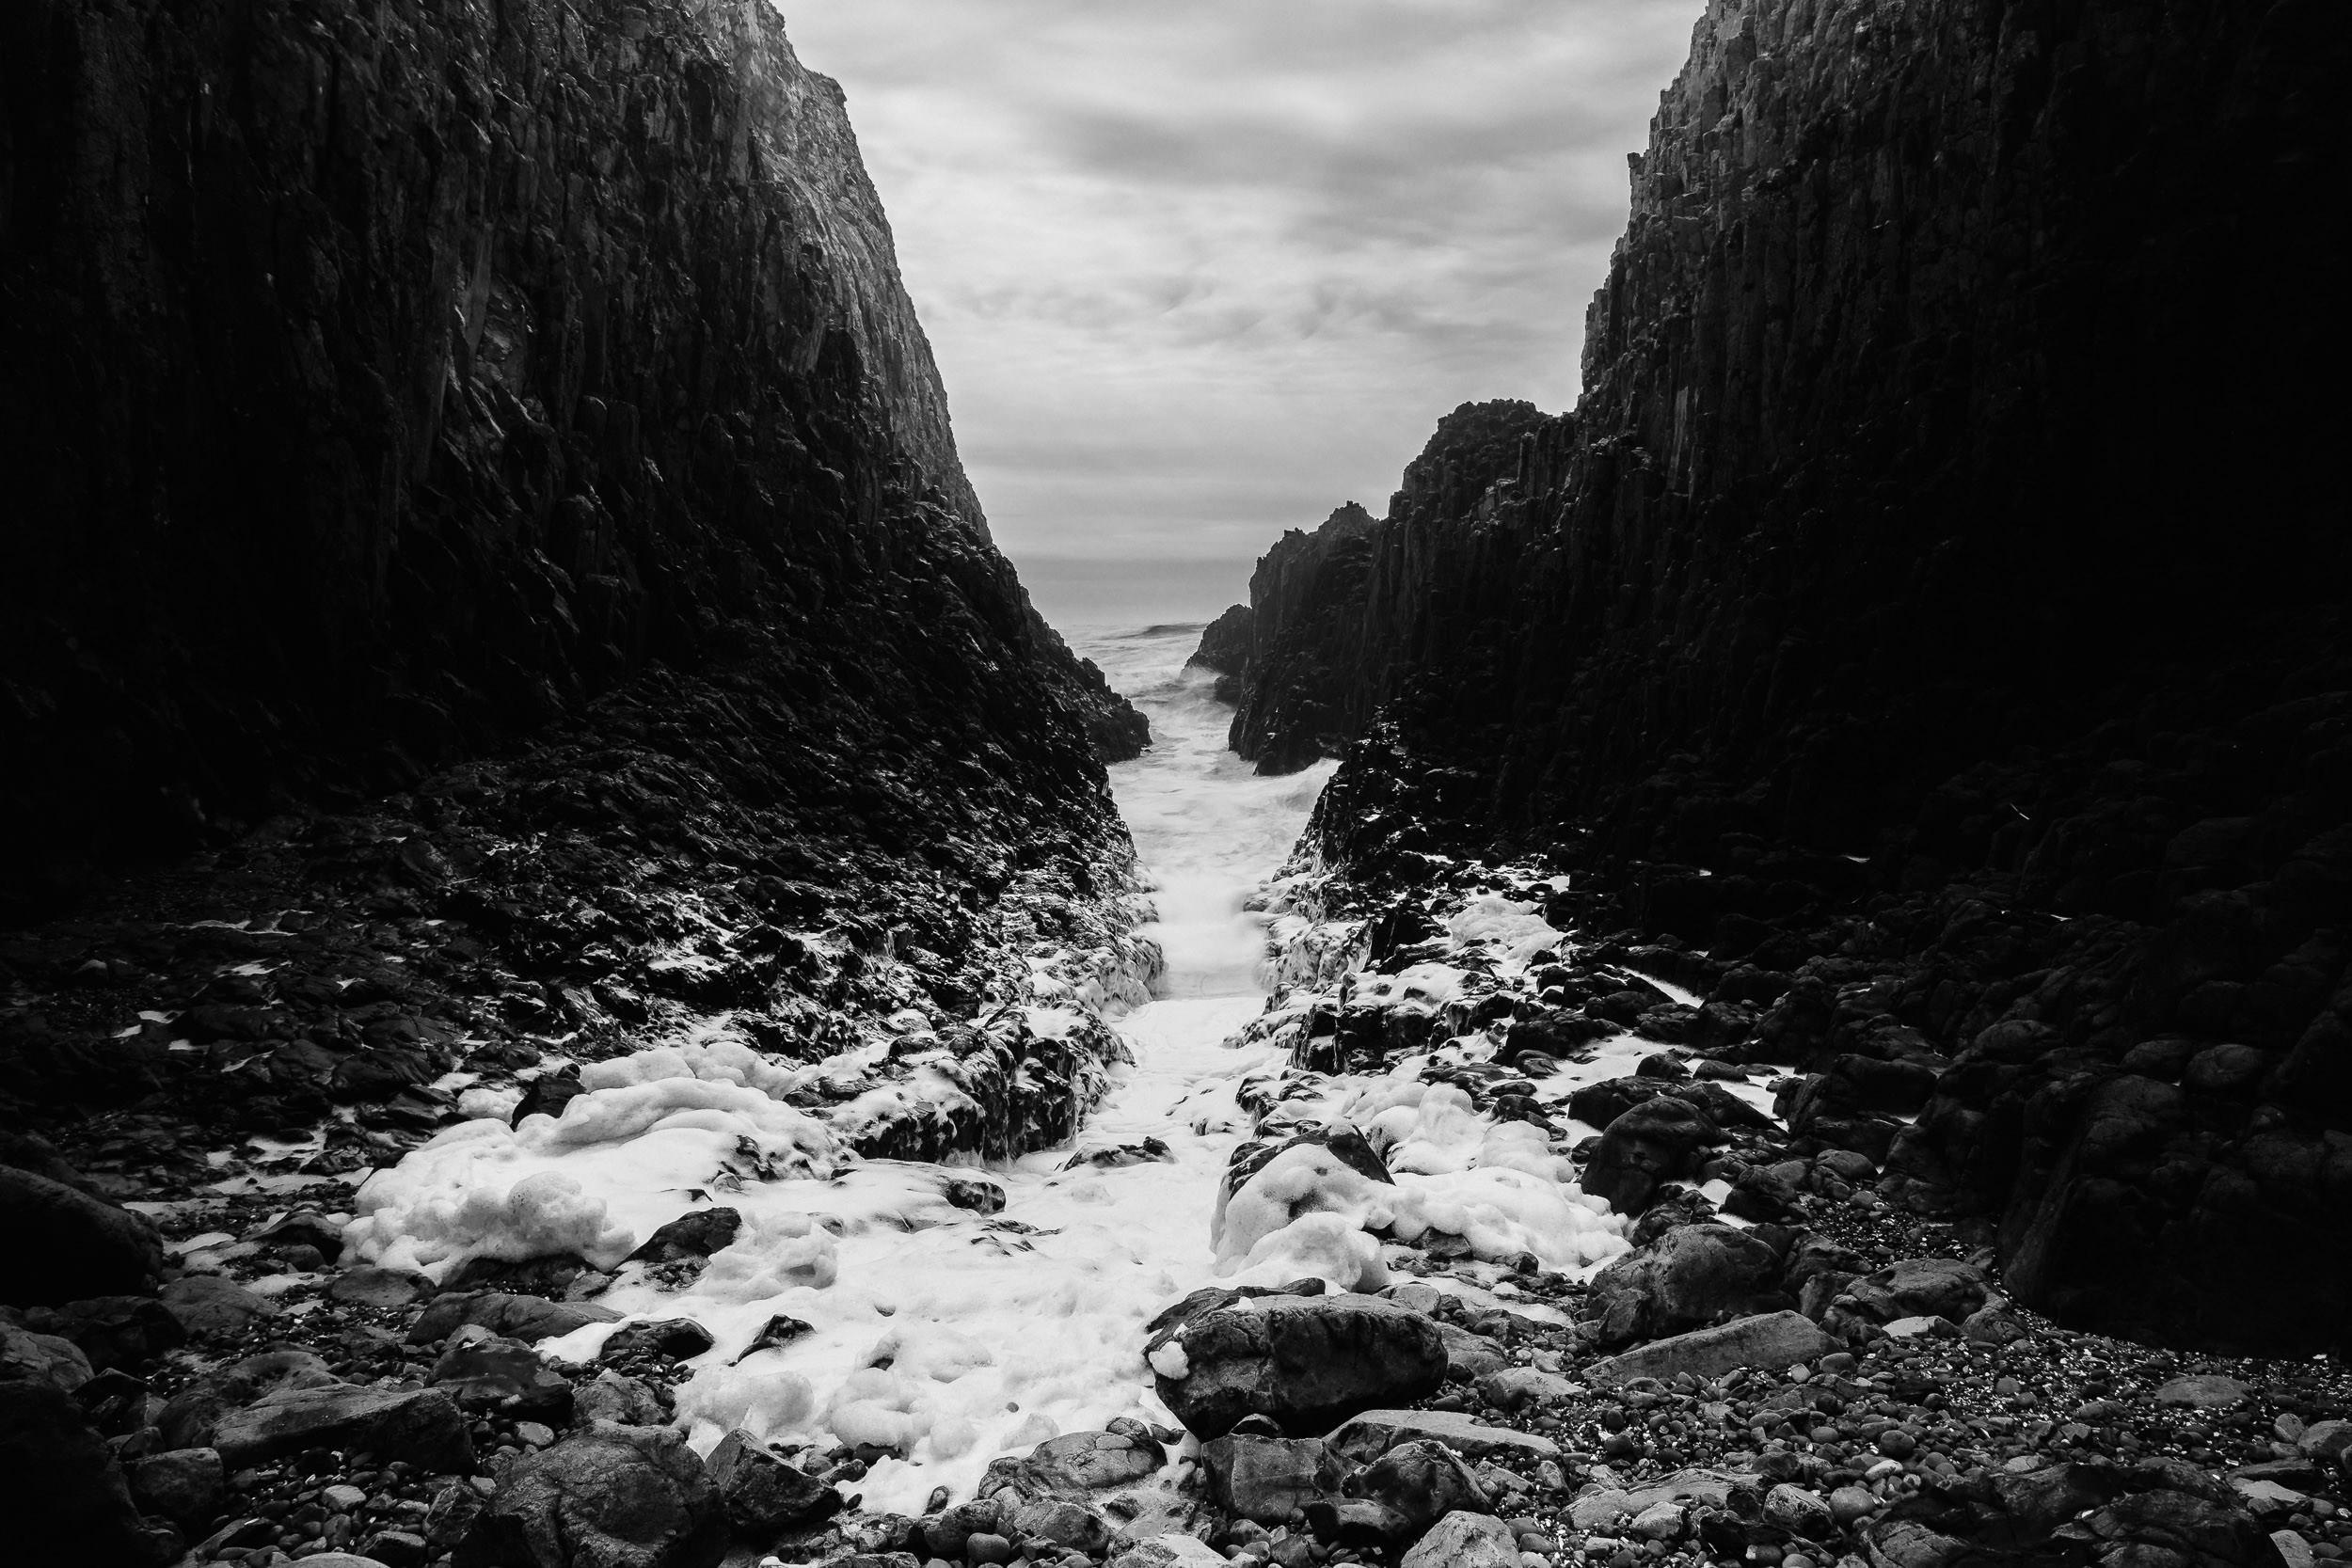 2015.10.23_Devils_Churn_Cape_Perpetua_Thors_Well-3950.jpg